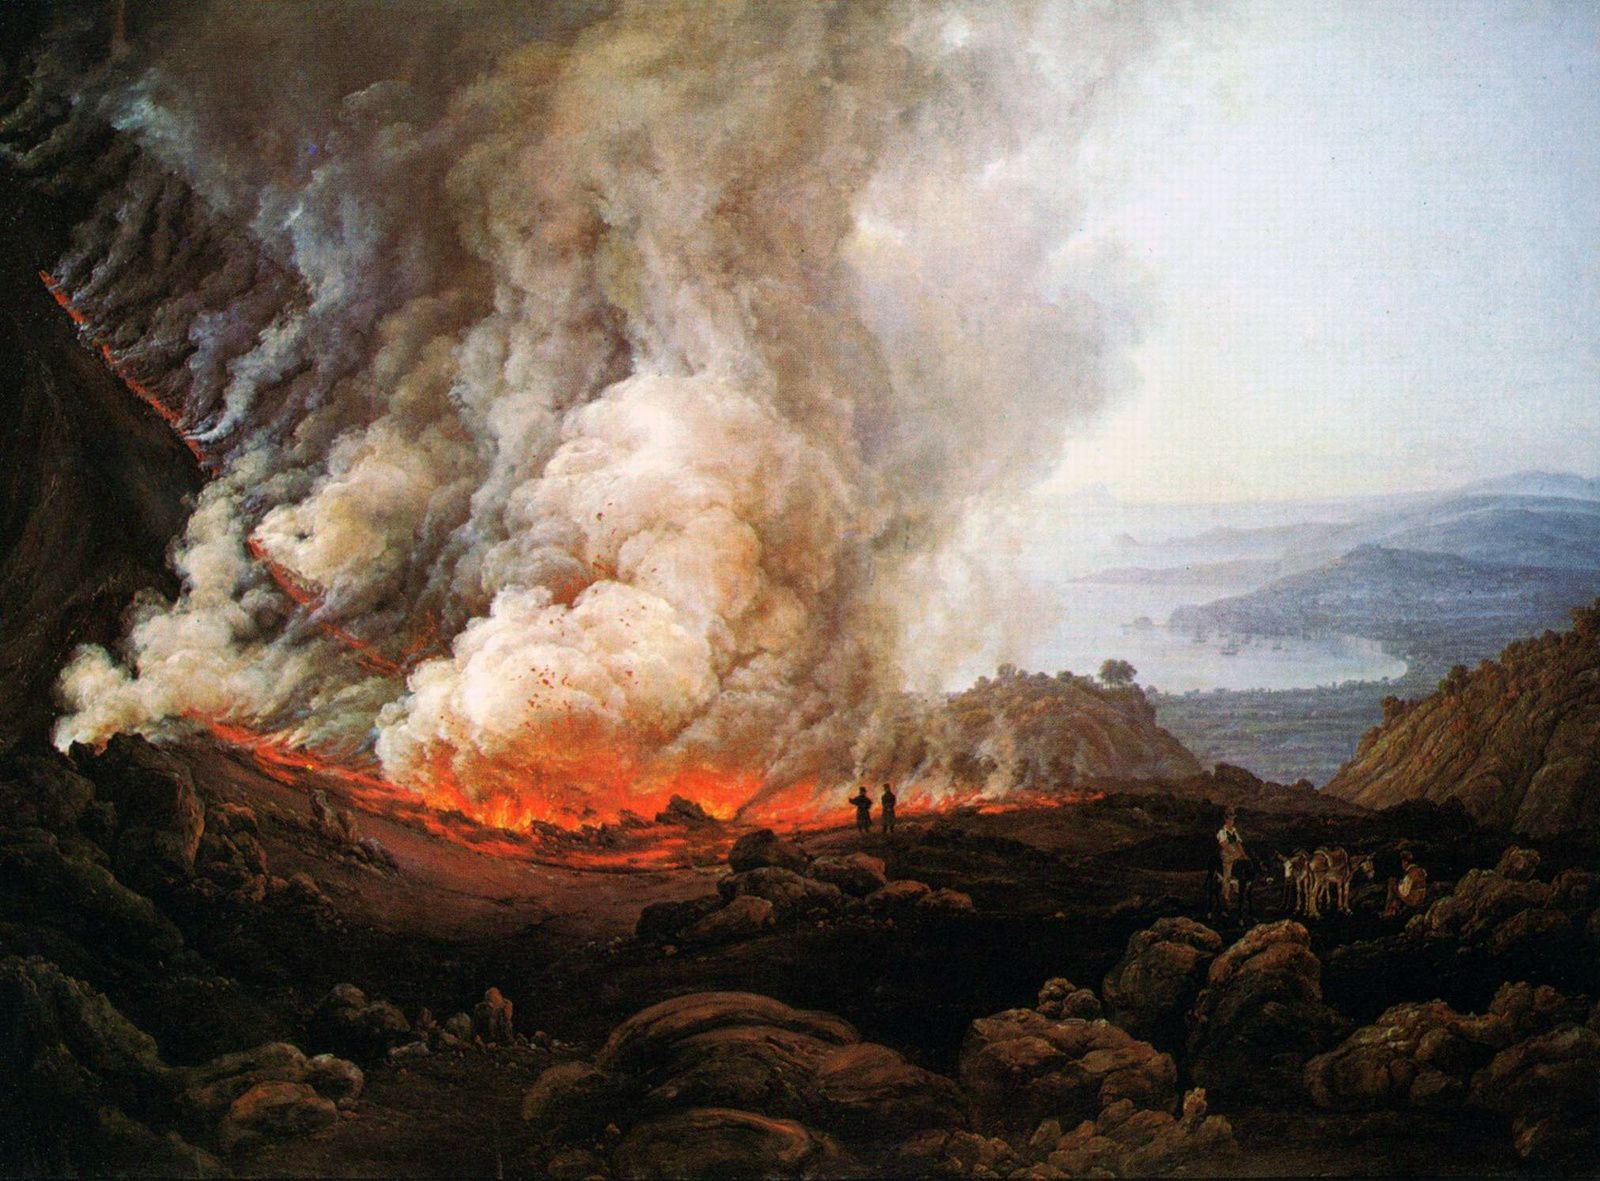 """View of Vesuvius in eruption"" in 1920 - Oil on canvas work by J.C. Dahl (1921) - kept at the Städel Art Institute and municipal gallery"